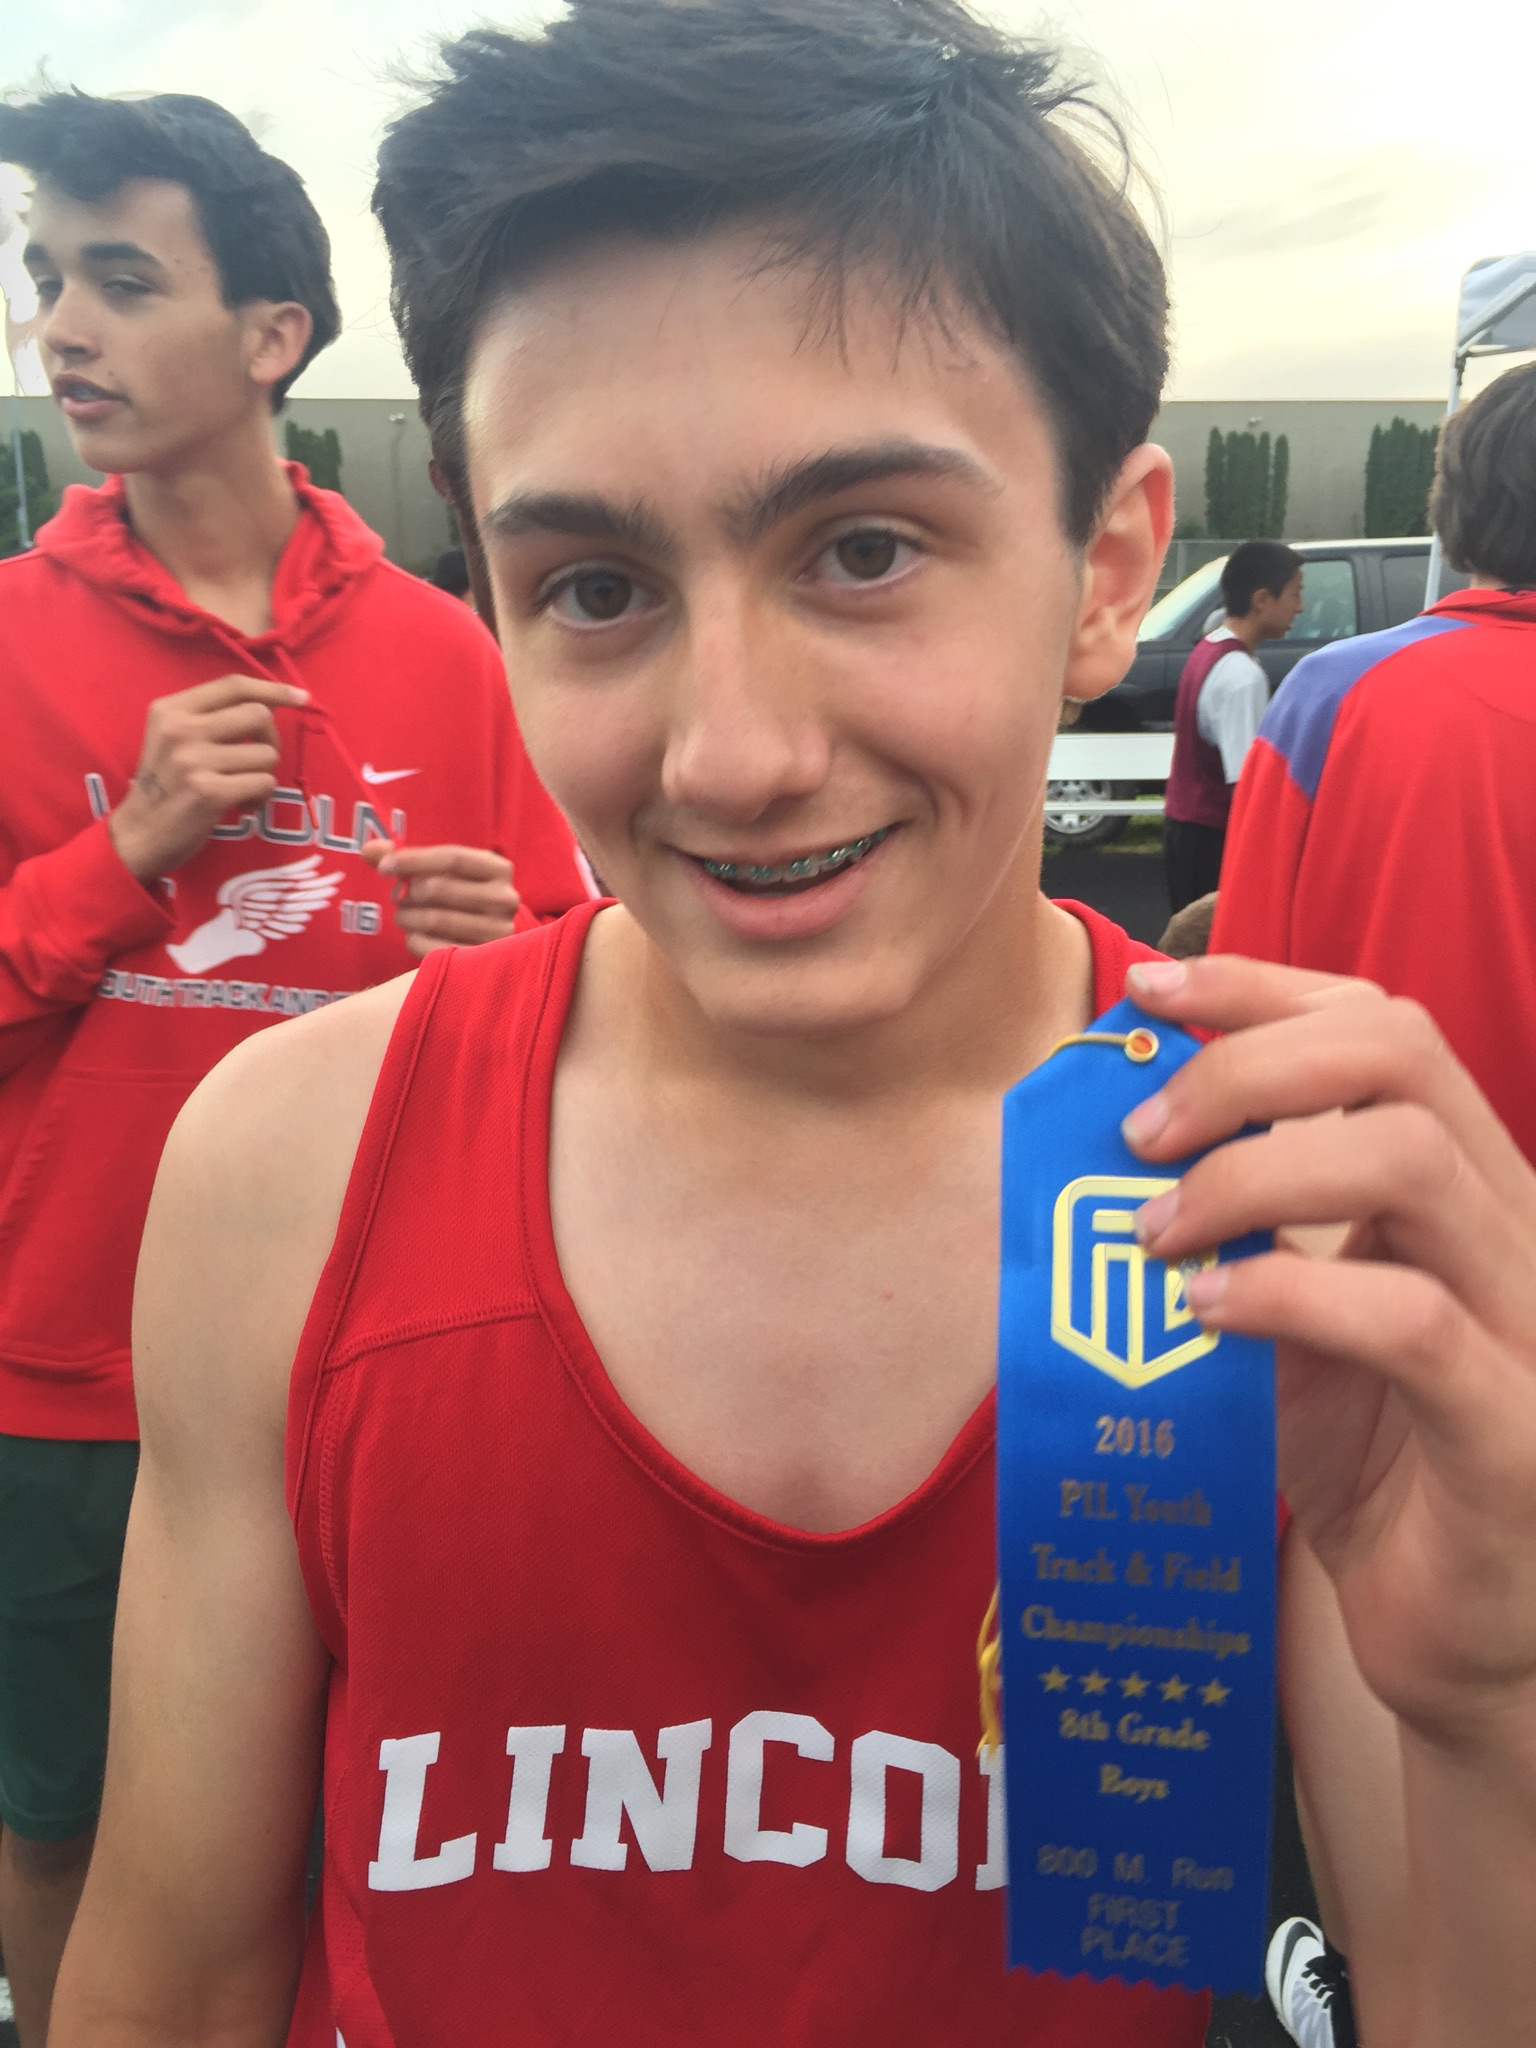 Ethan holding his PIL 800m District Championship ribbon. Earlier in the evening, he won the open 400m, and then anchored the 4x400m relay to a second place finish.